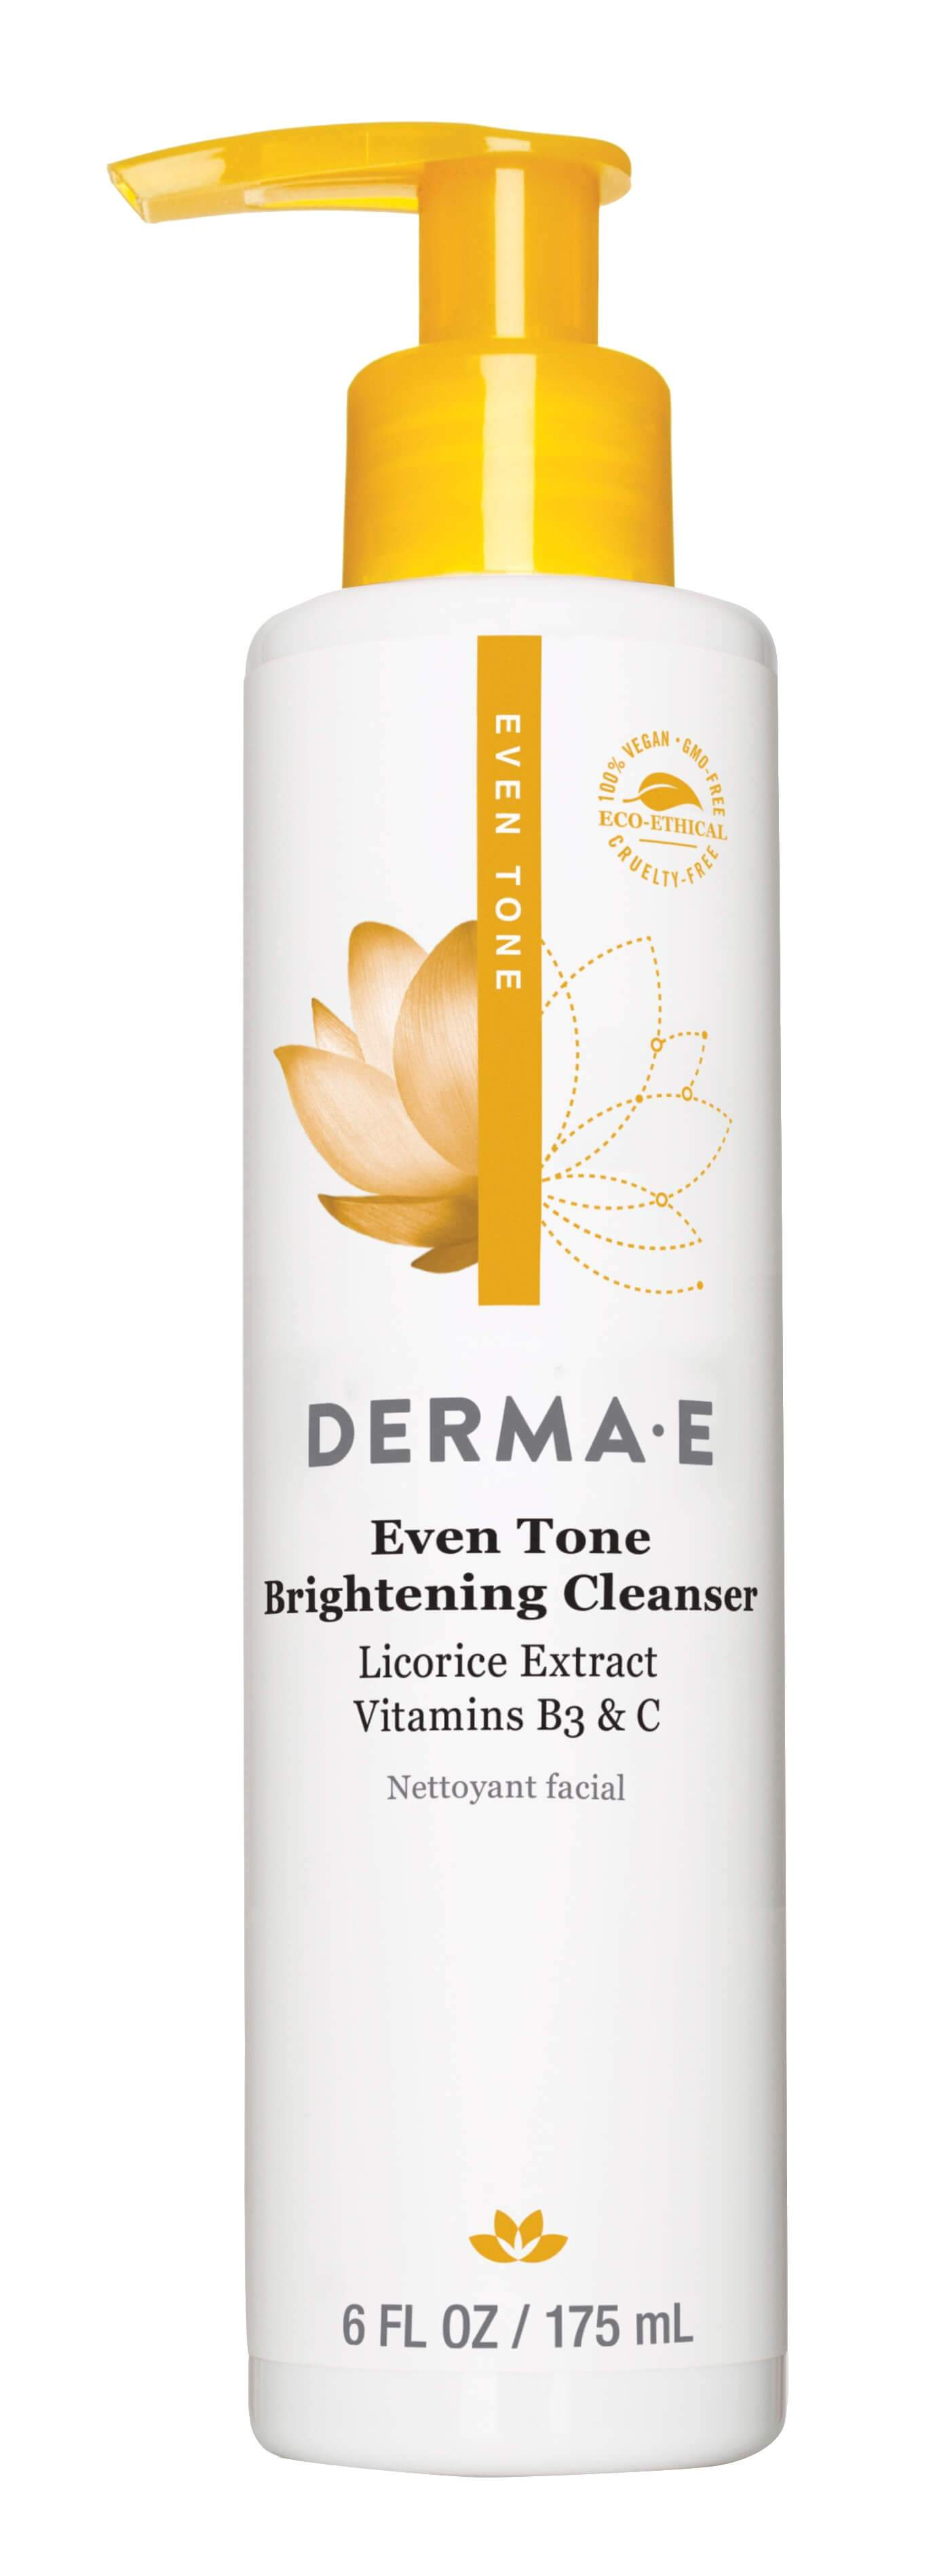 Beauty & Skin Care,Gluten Free,Vegan,Vegetarian,Non GMO - Derma E - Even Tone Brightening Cleanser, 175ml